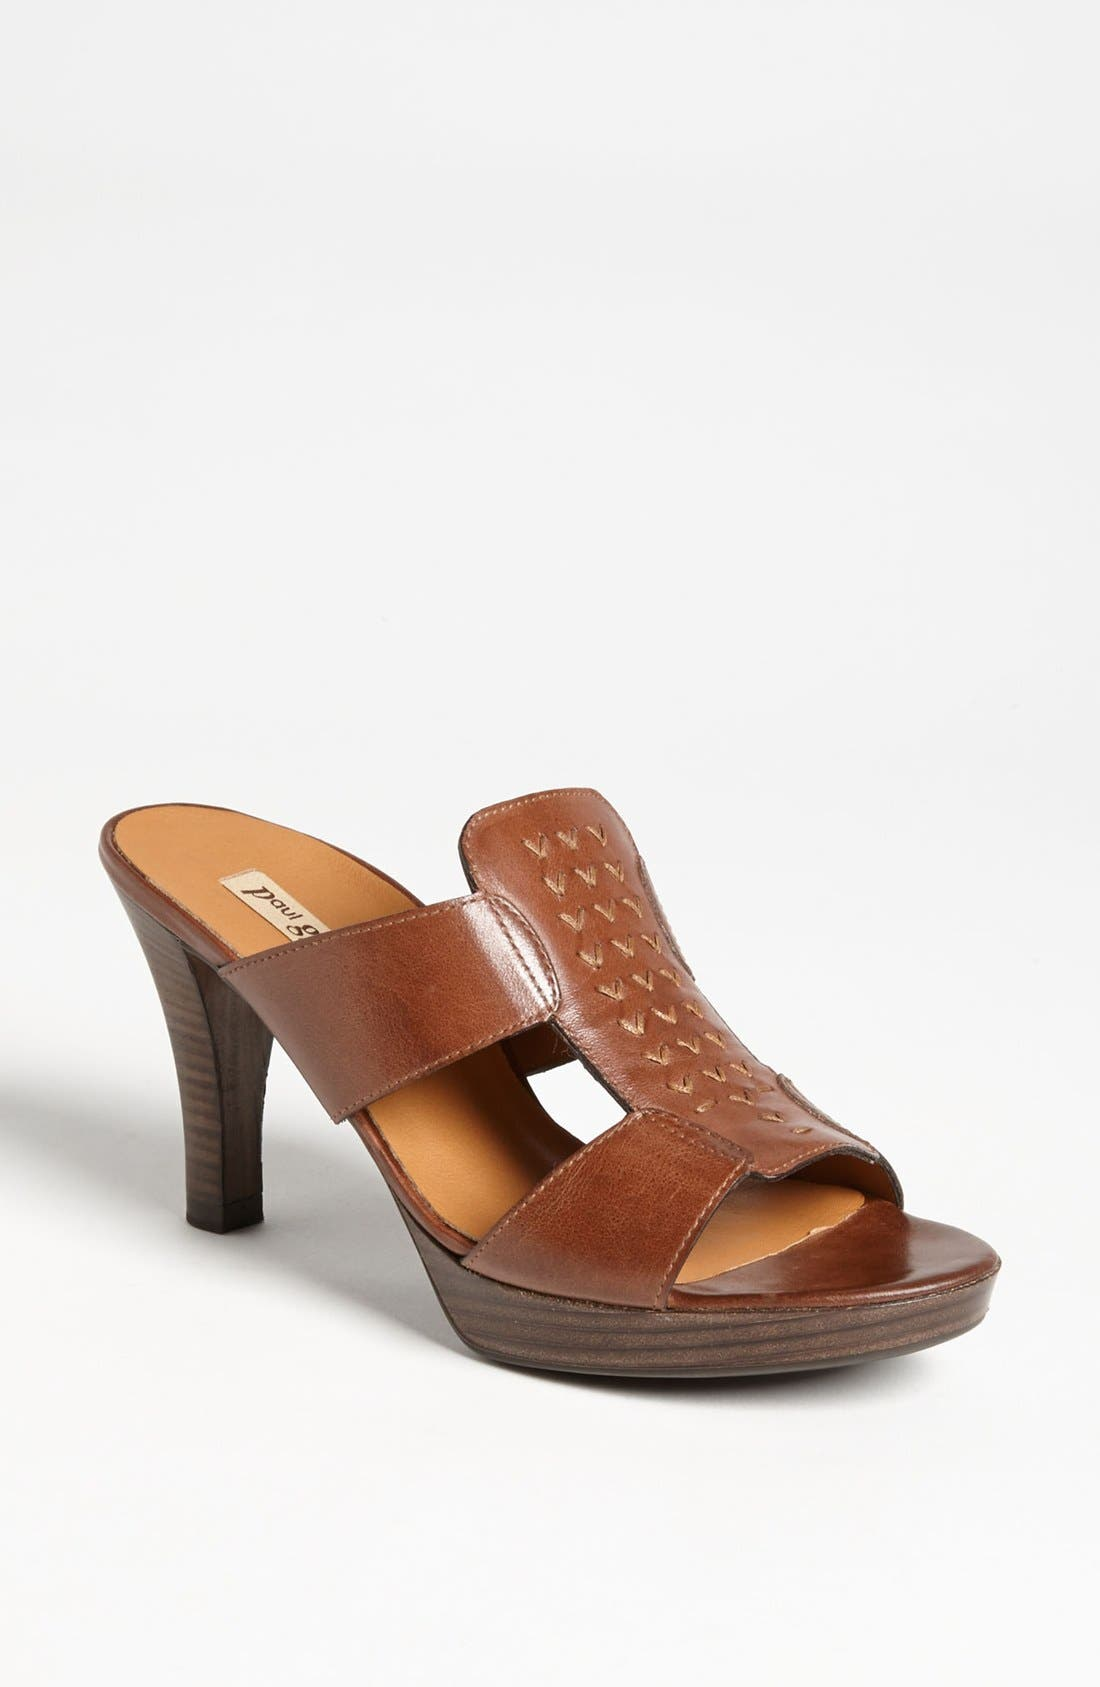 Alternate Image 1 Selected - Paul Green 'Perla' Sandal